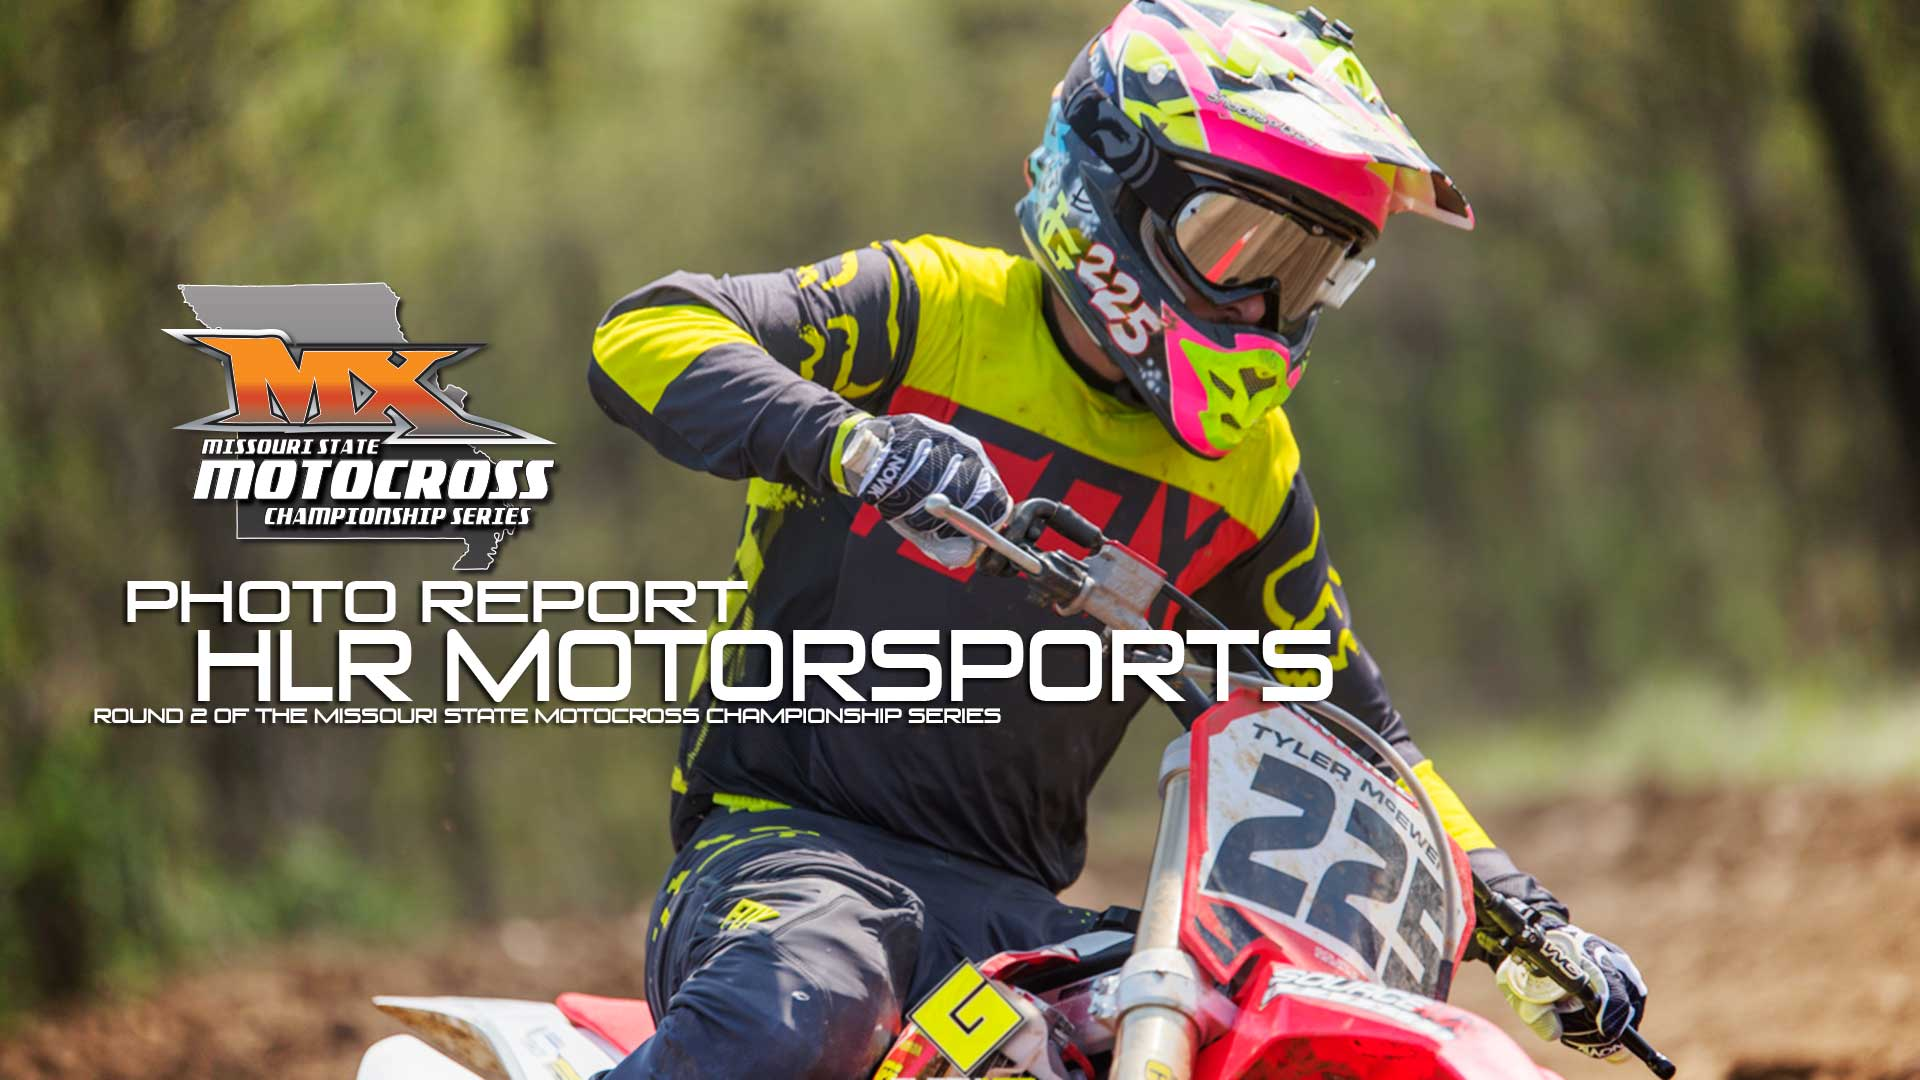 Missouri State Motocross Championship - Photo Report